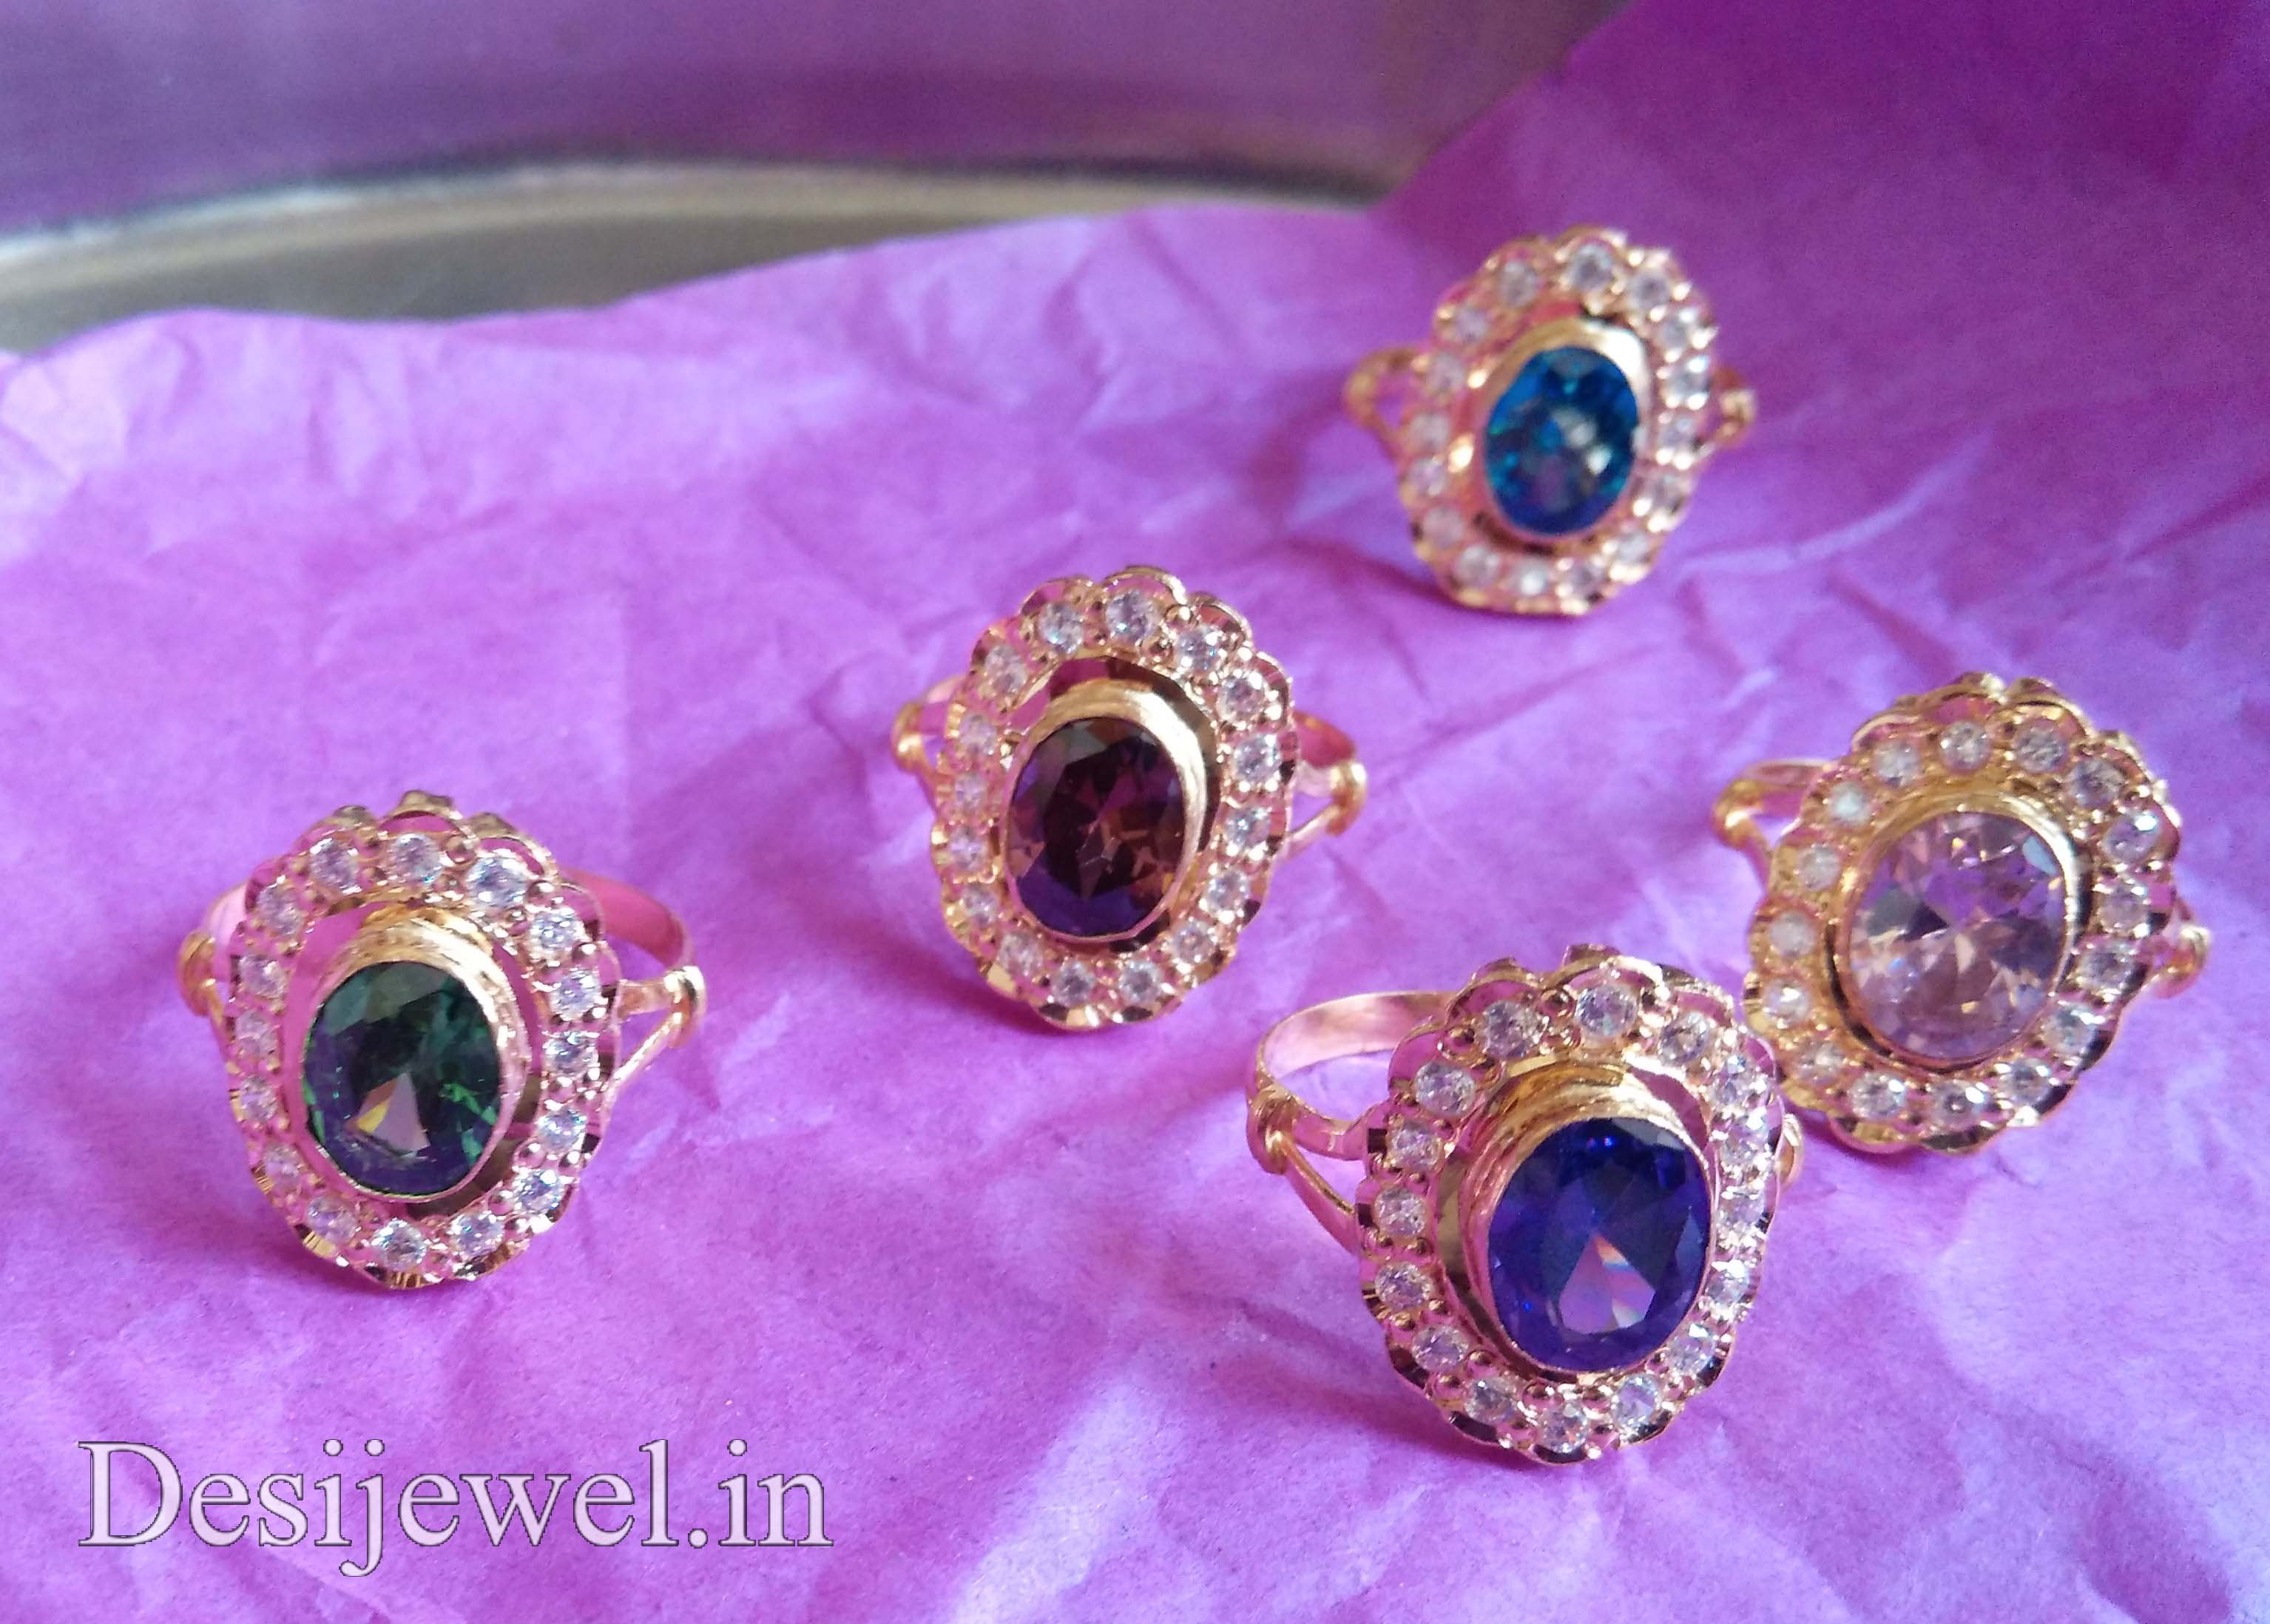 Rajasthani Gold Desi Ladies Ring Jewellery  in Jodhpur with weight of 5-6 GM